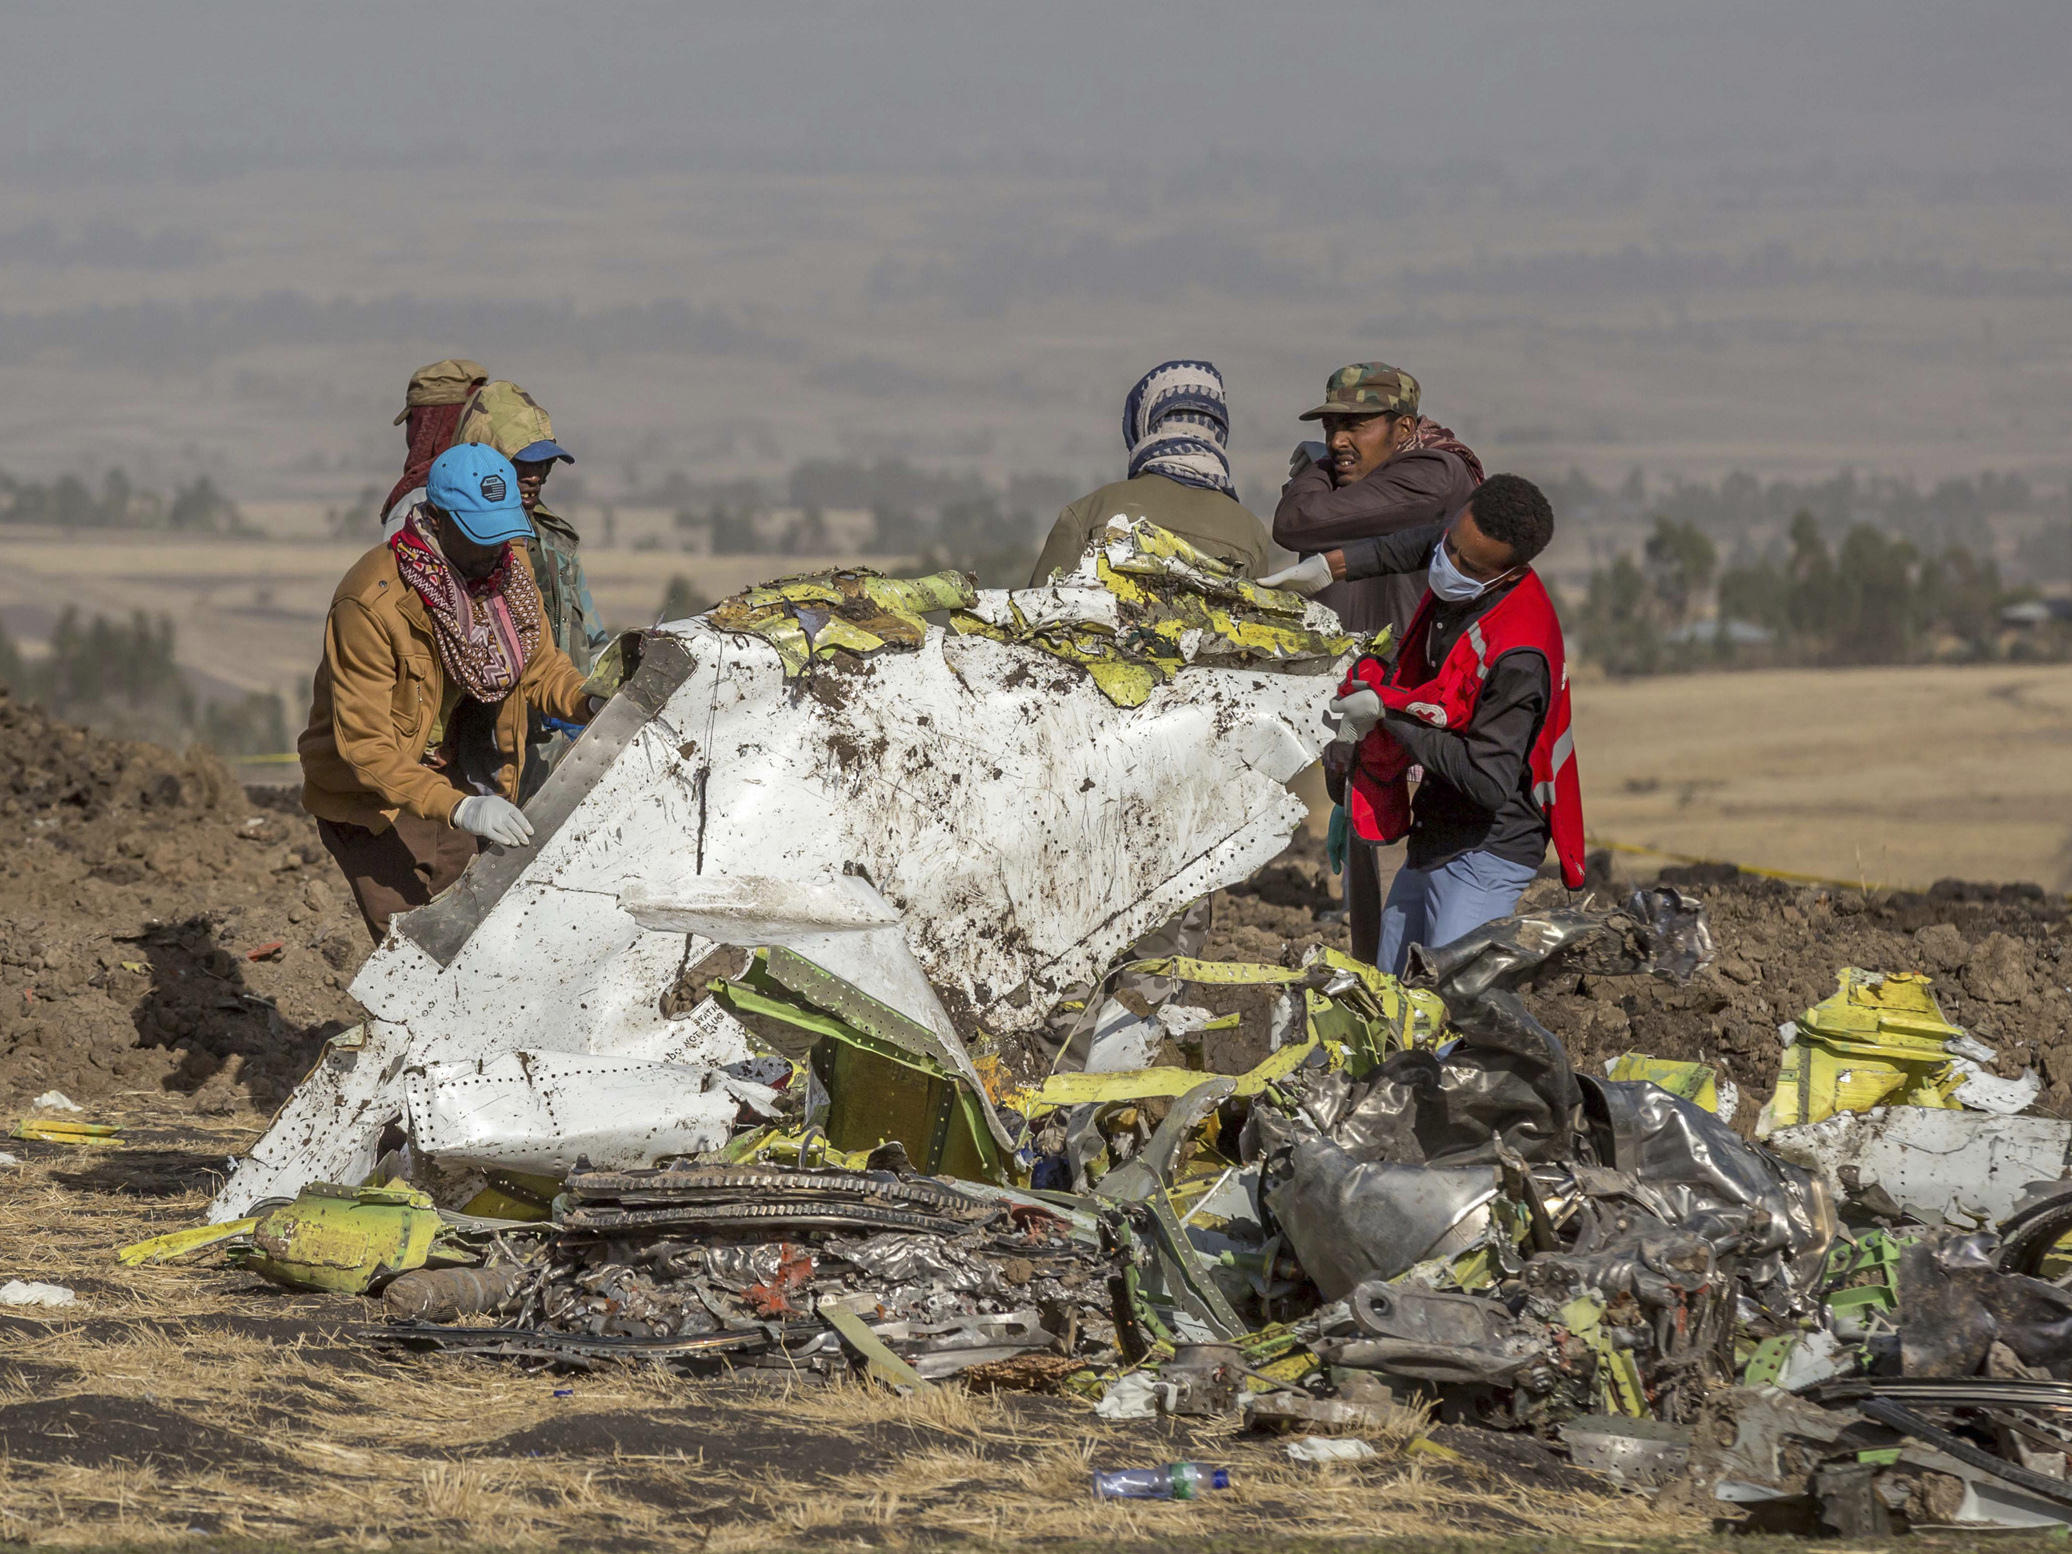 US Congress slams Boeing in searing 737 MAX report